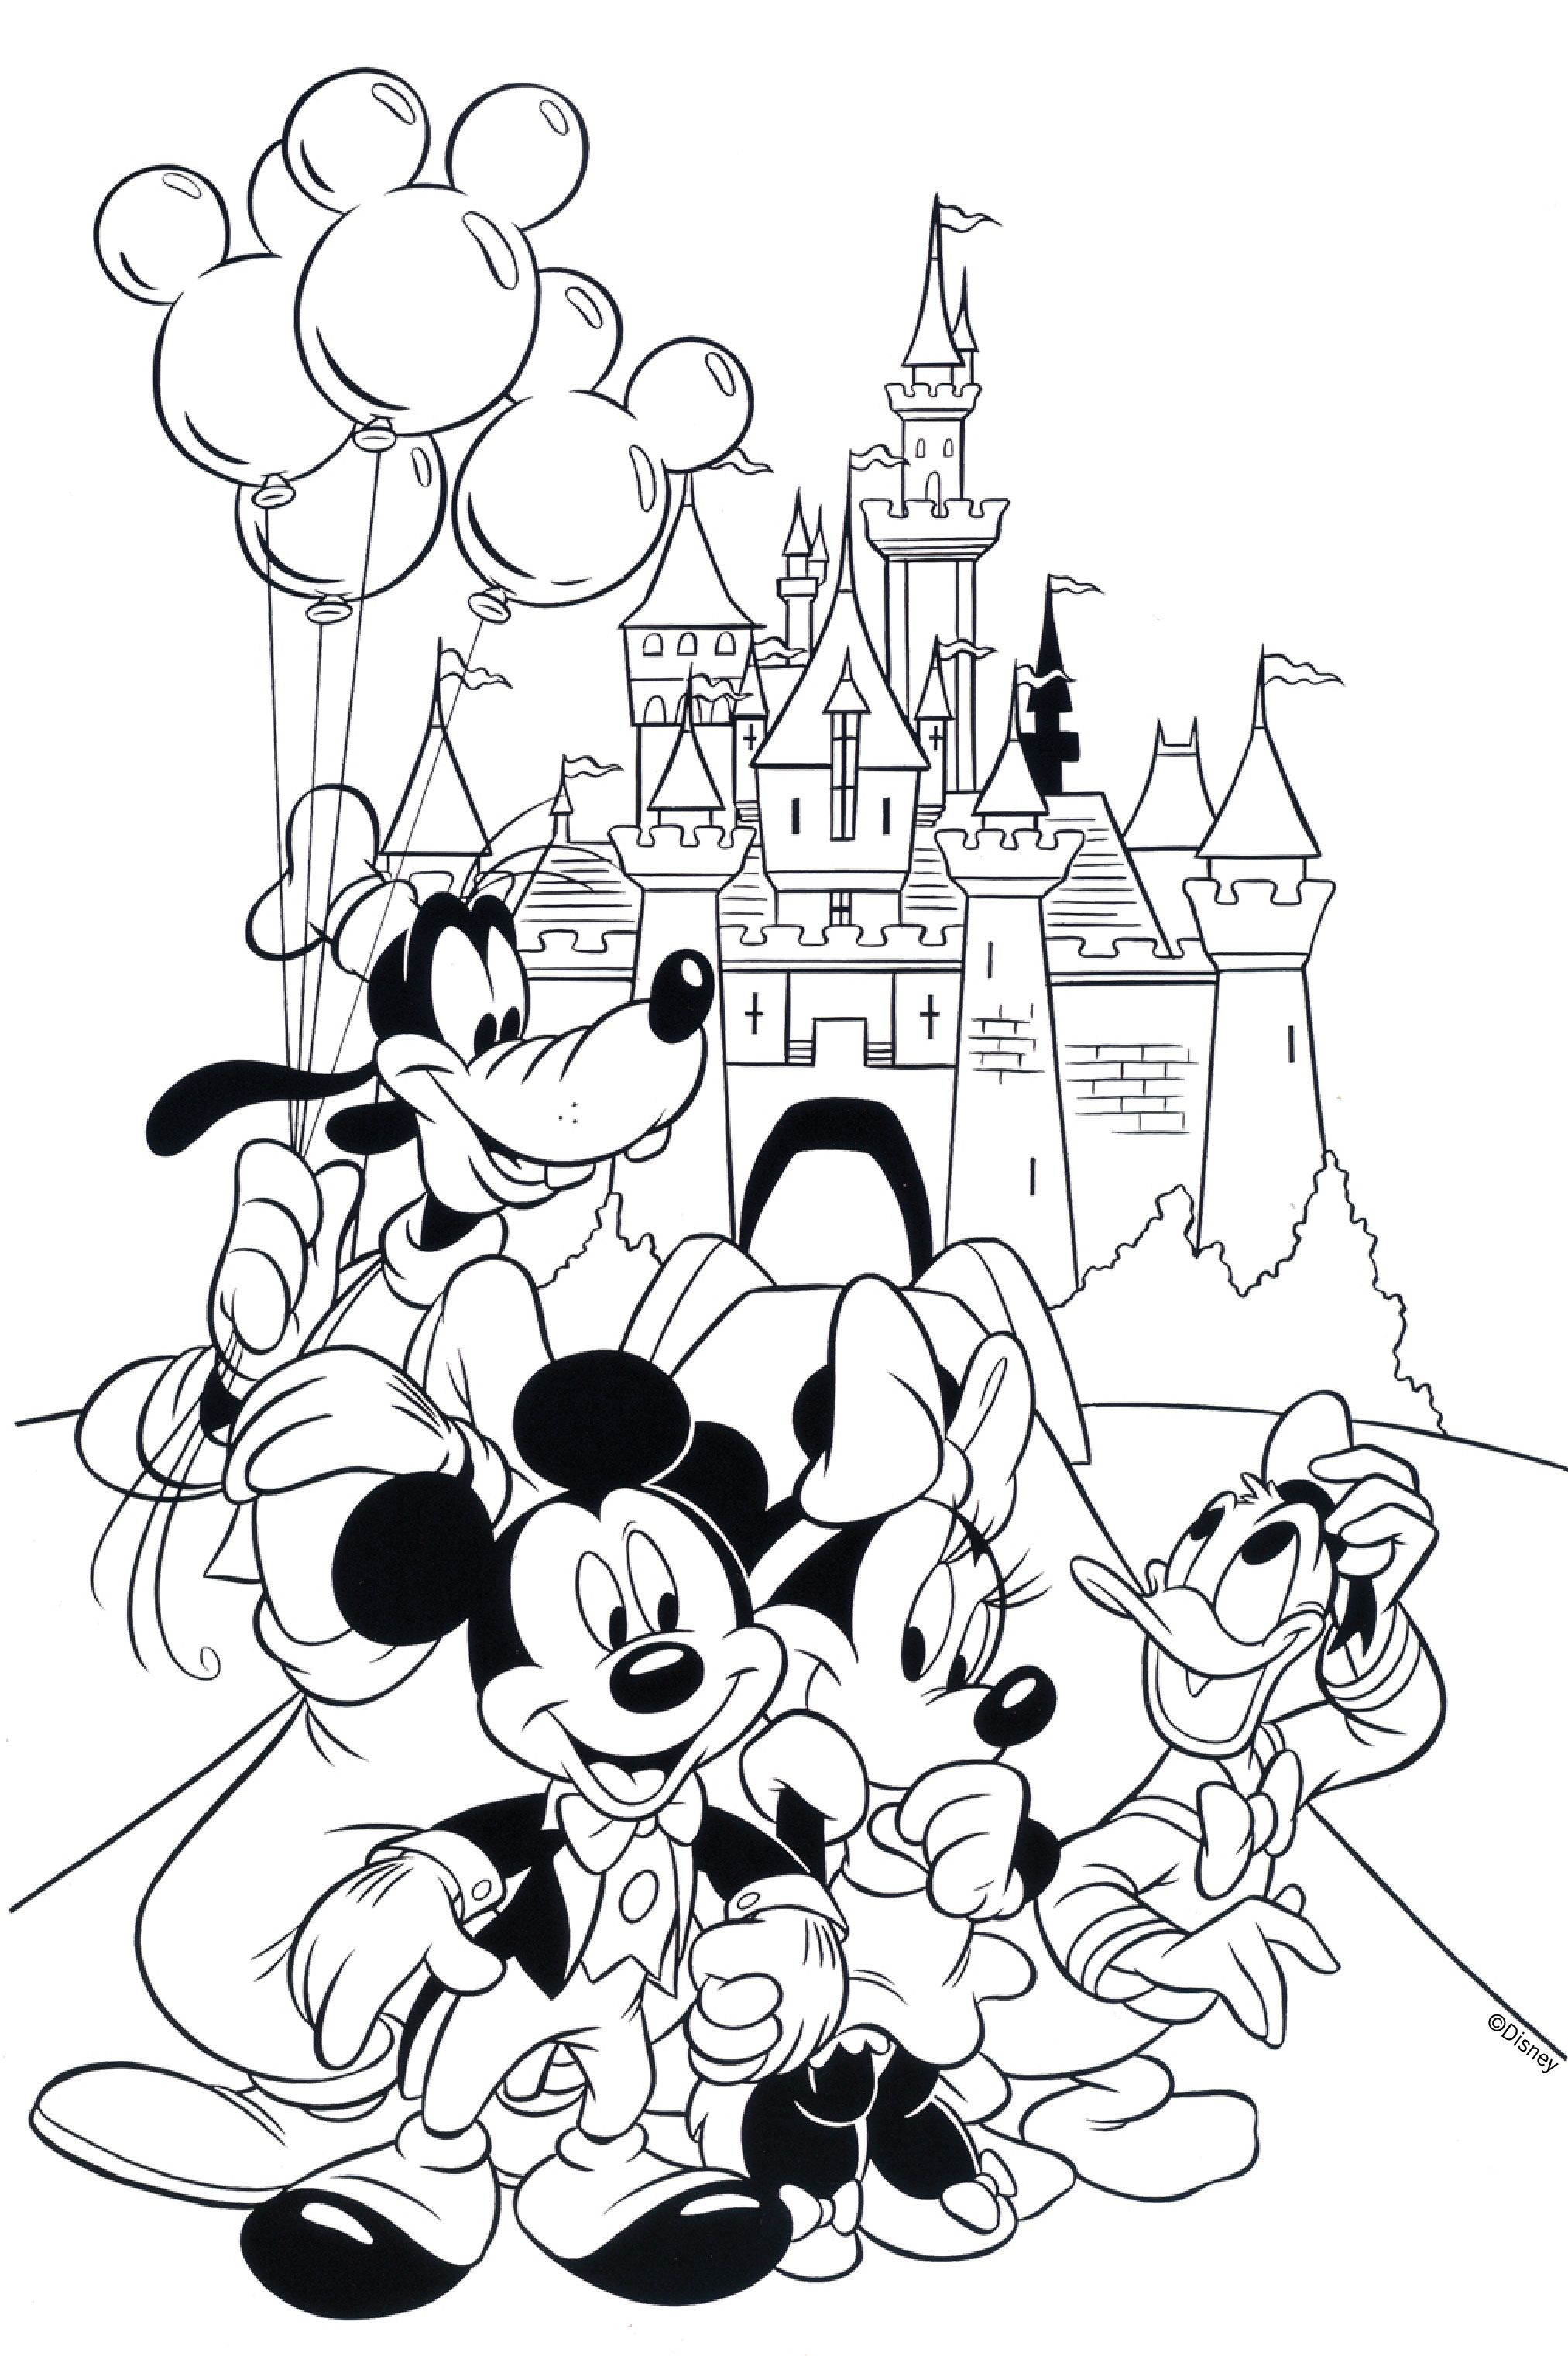 Free disney coloring pages to print out -  Free Disney Coloring Page Printable